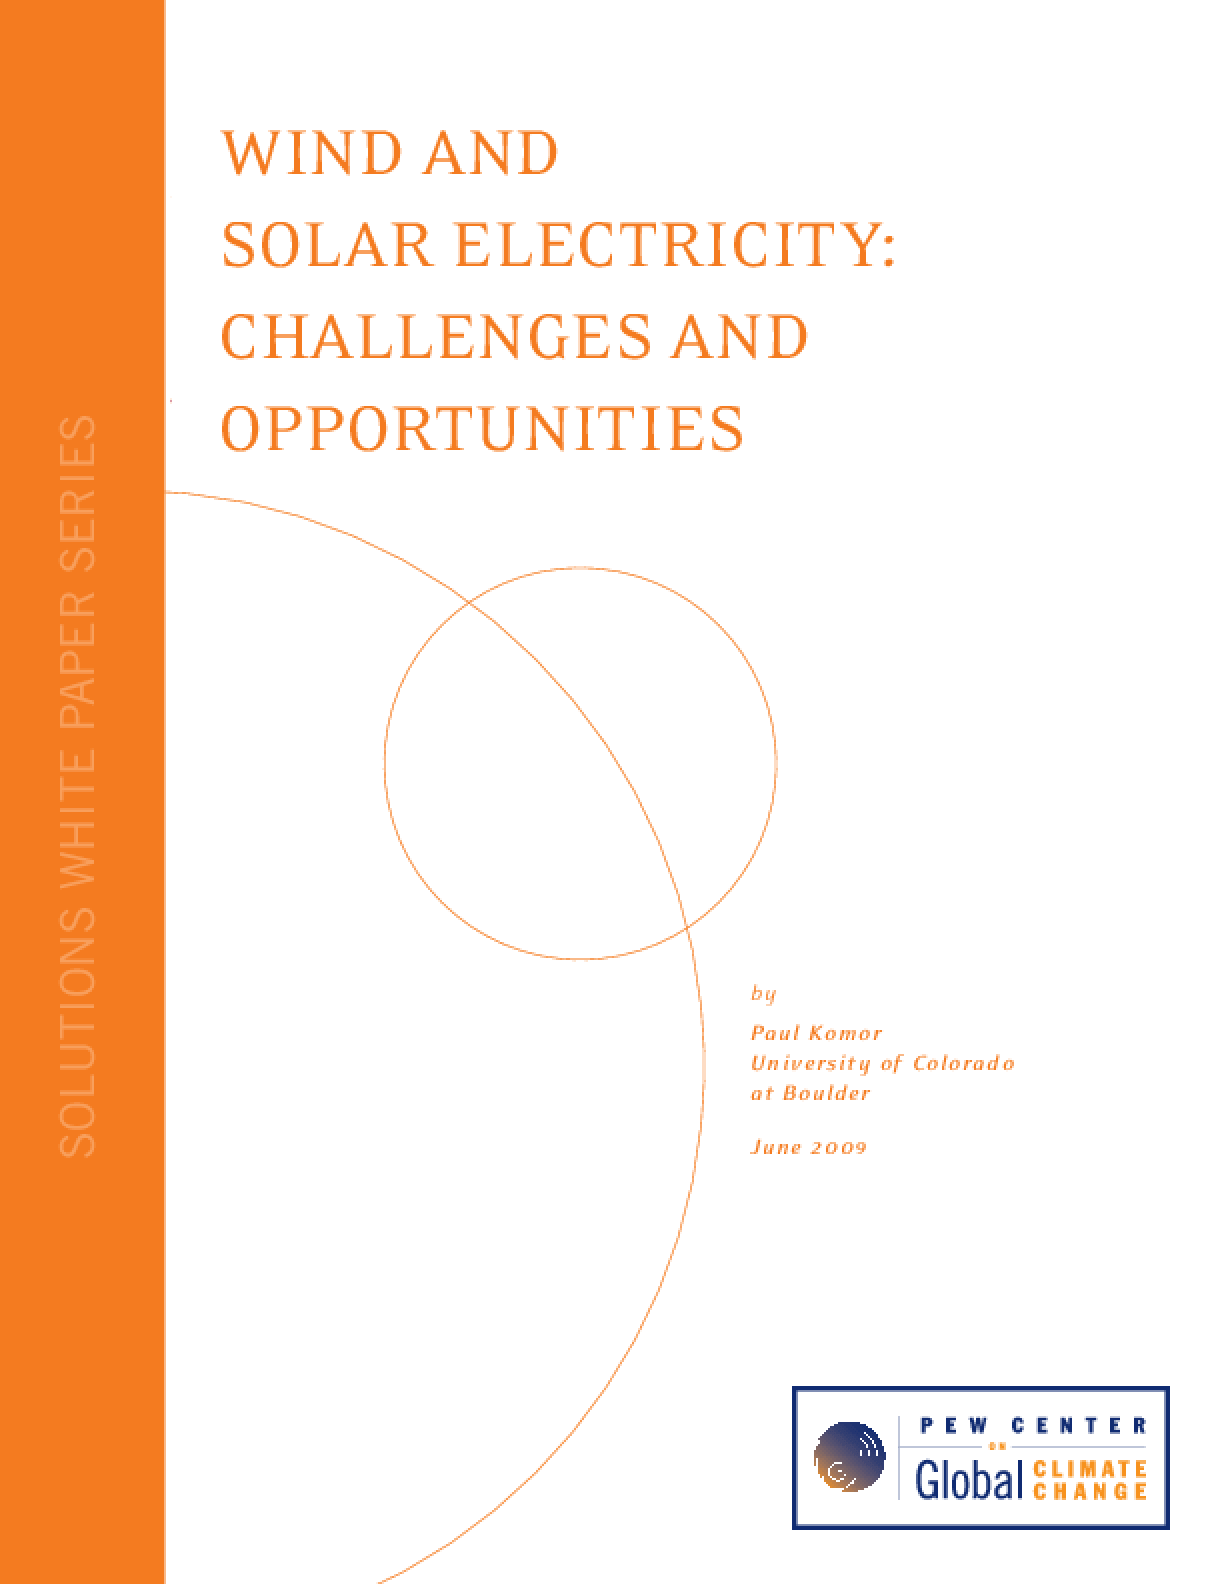 Wind and Solar Electricity: Challenges and Opportunities